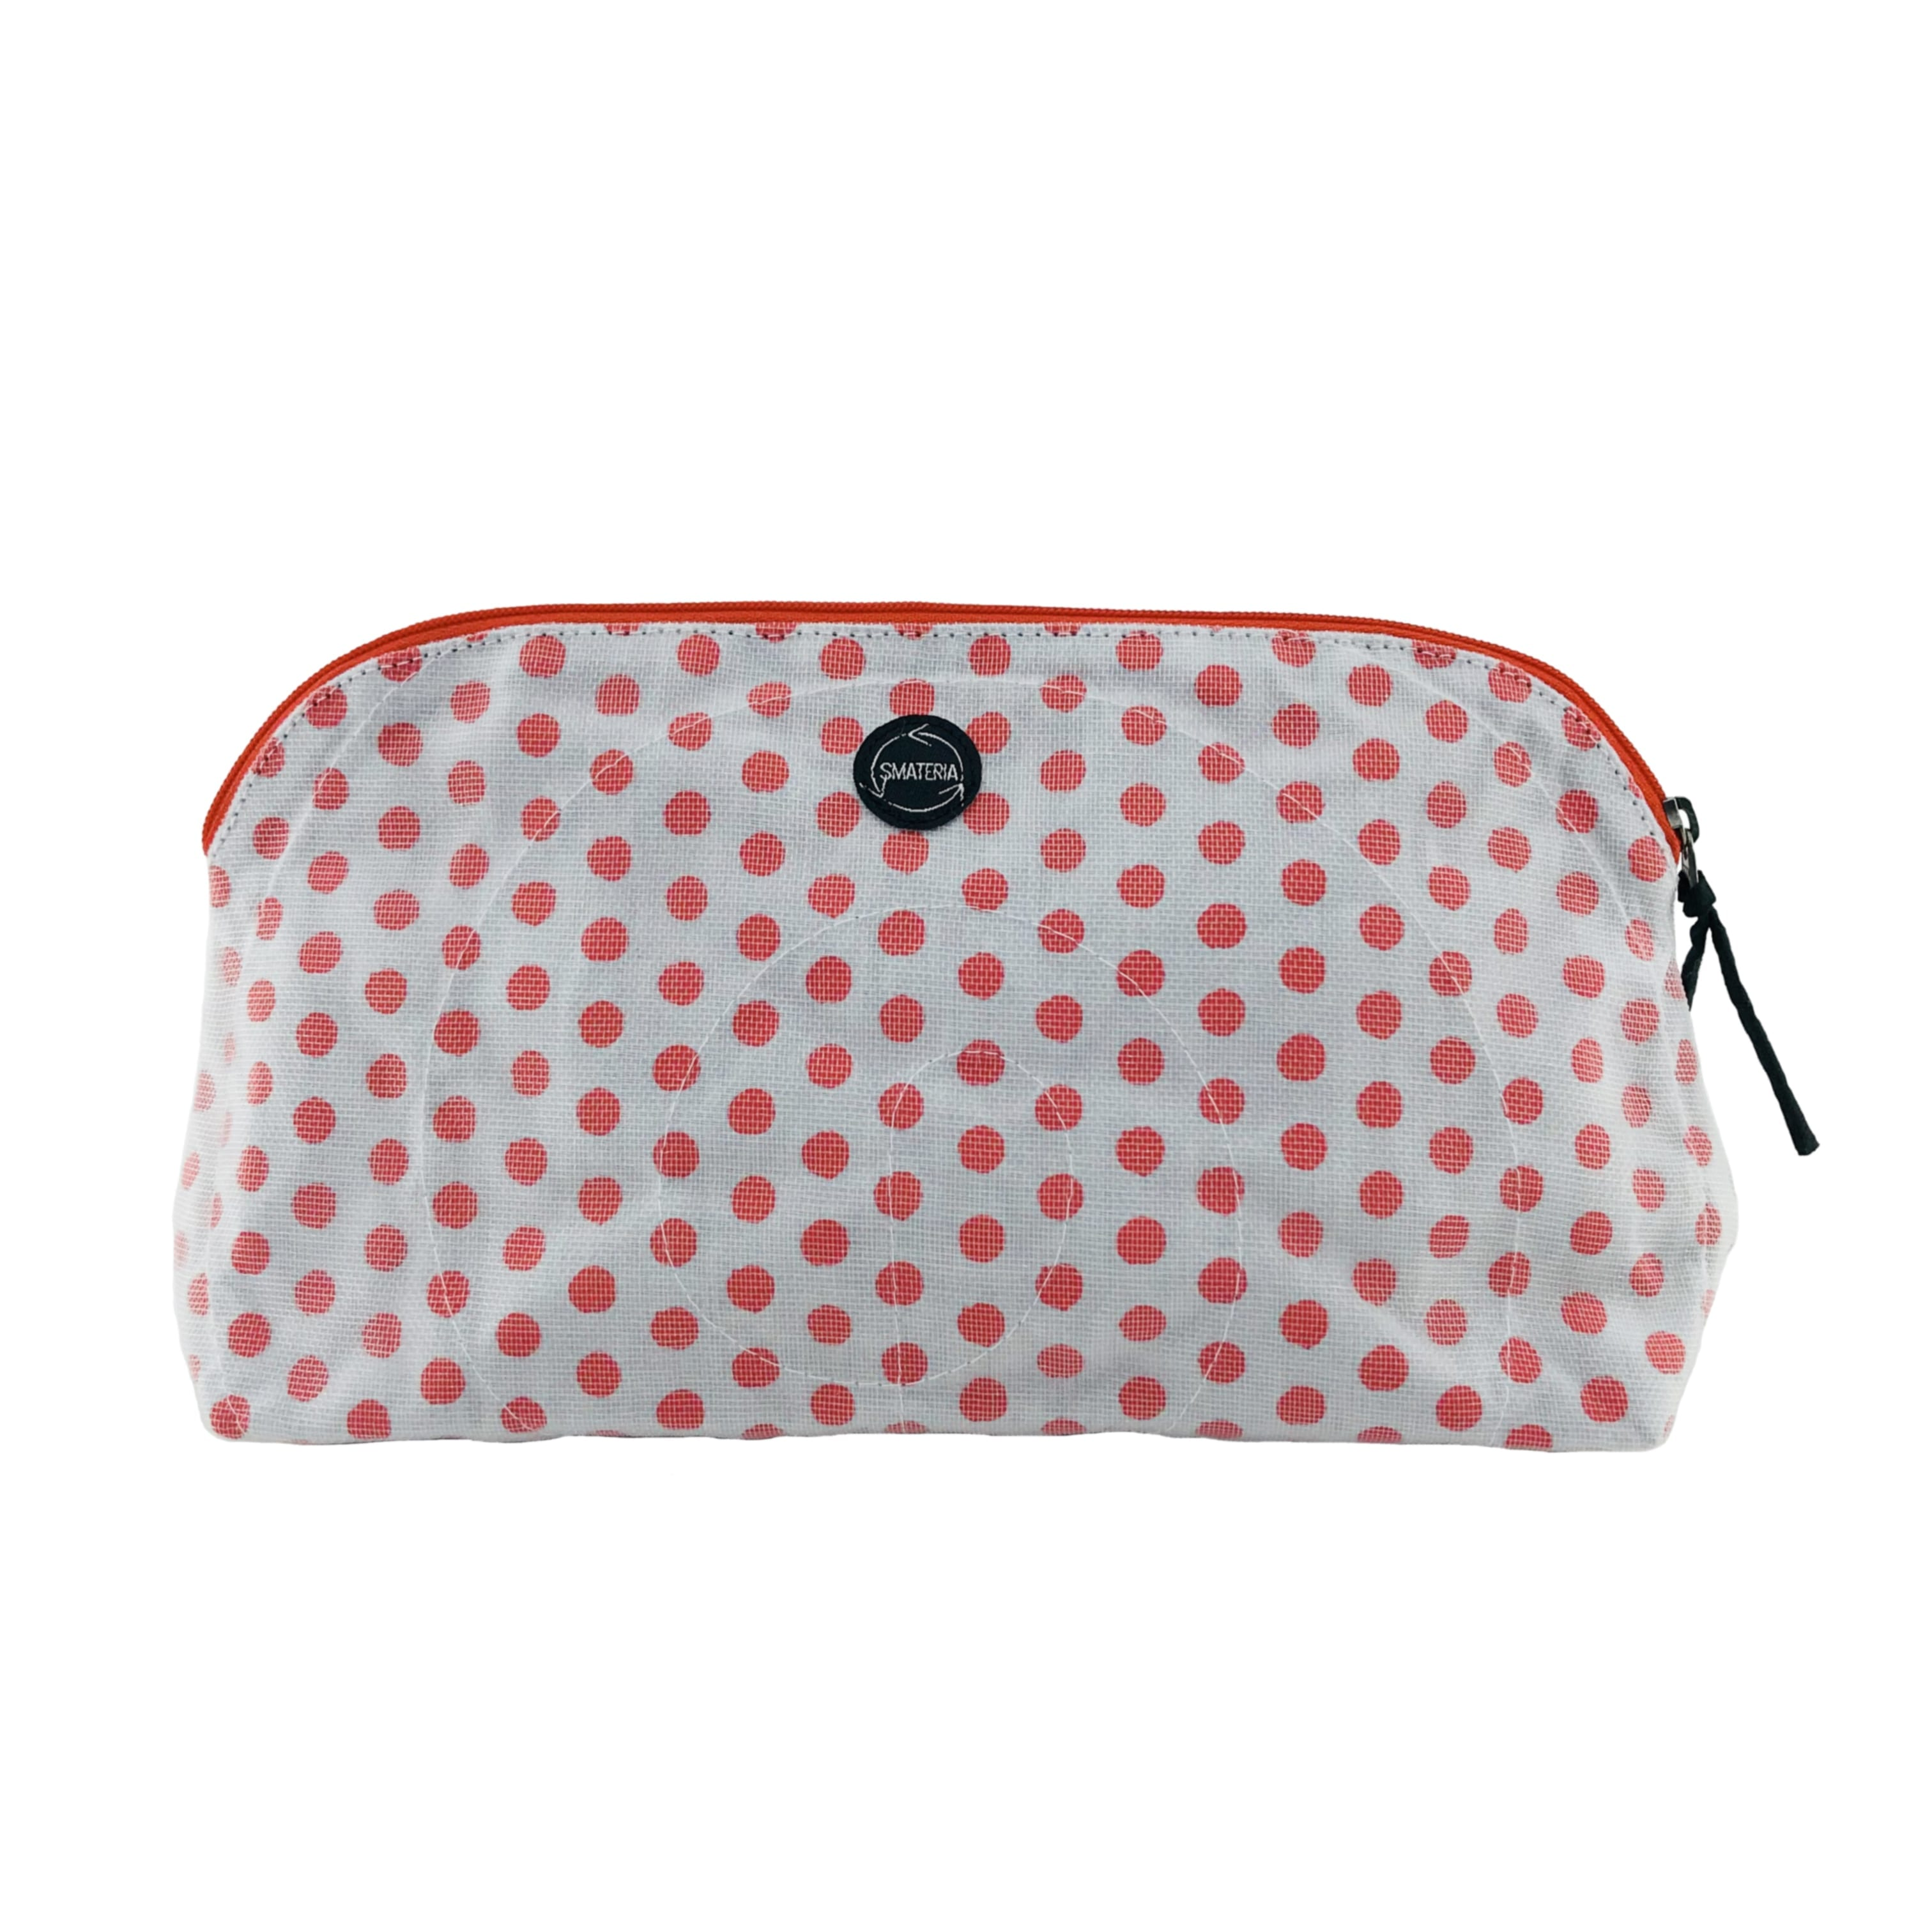 La Trousse de maquillage - Grand - Pois rouges